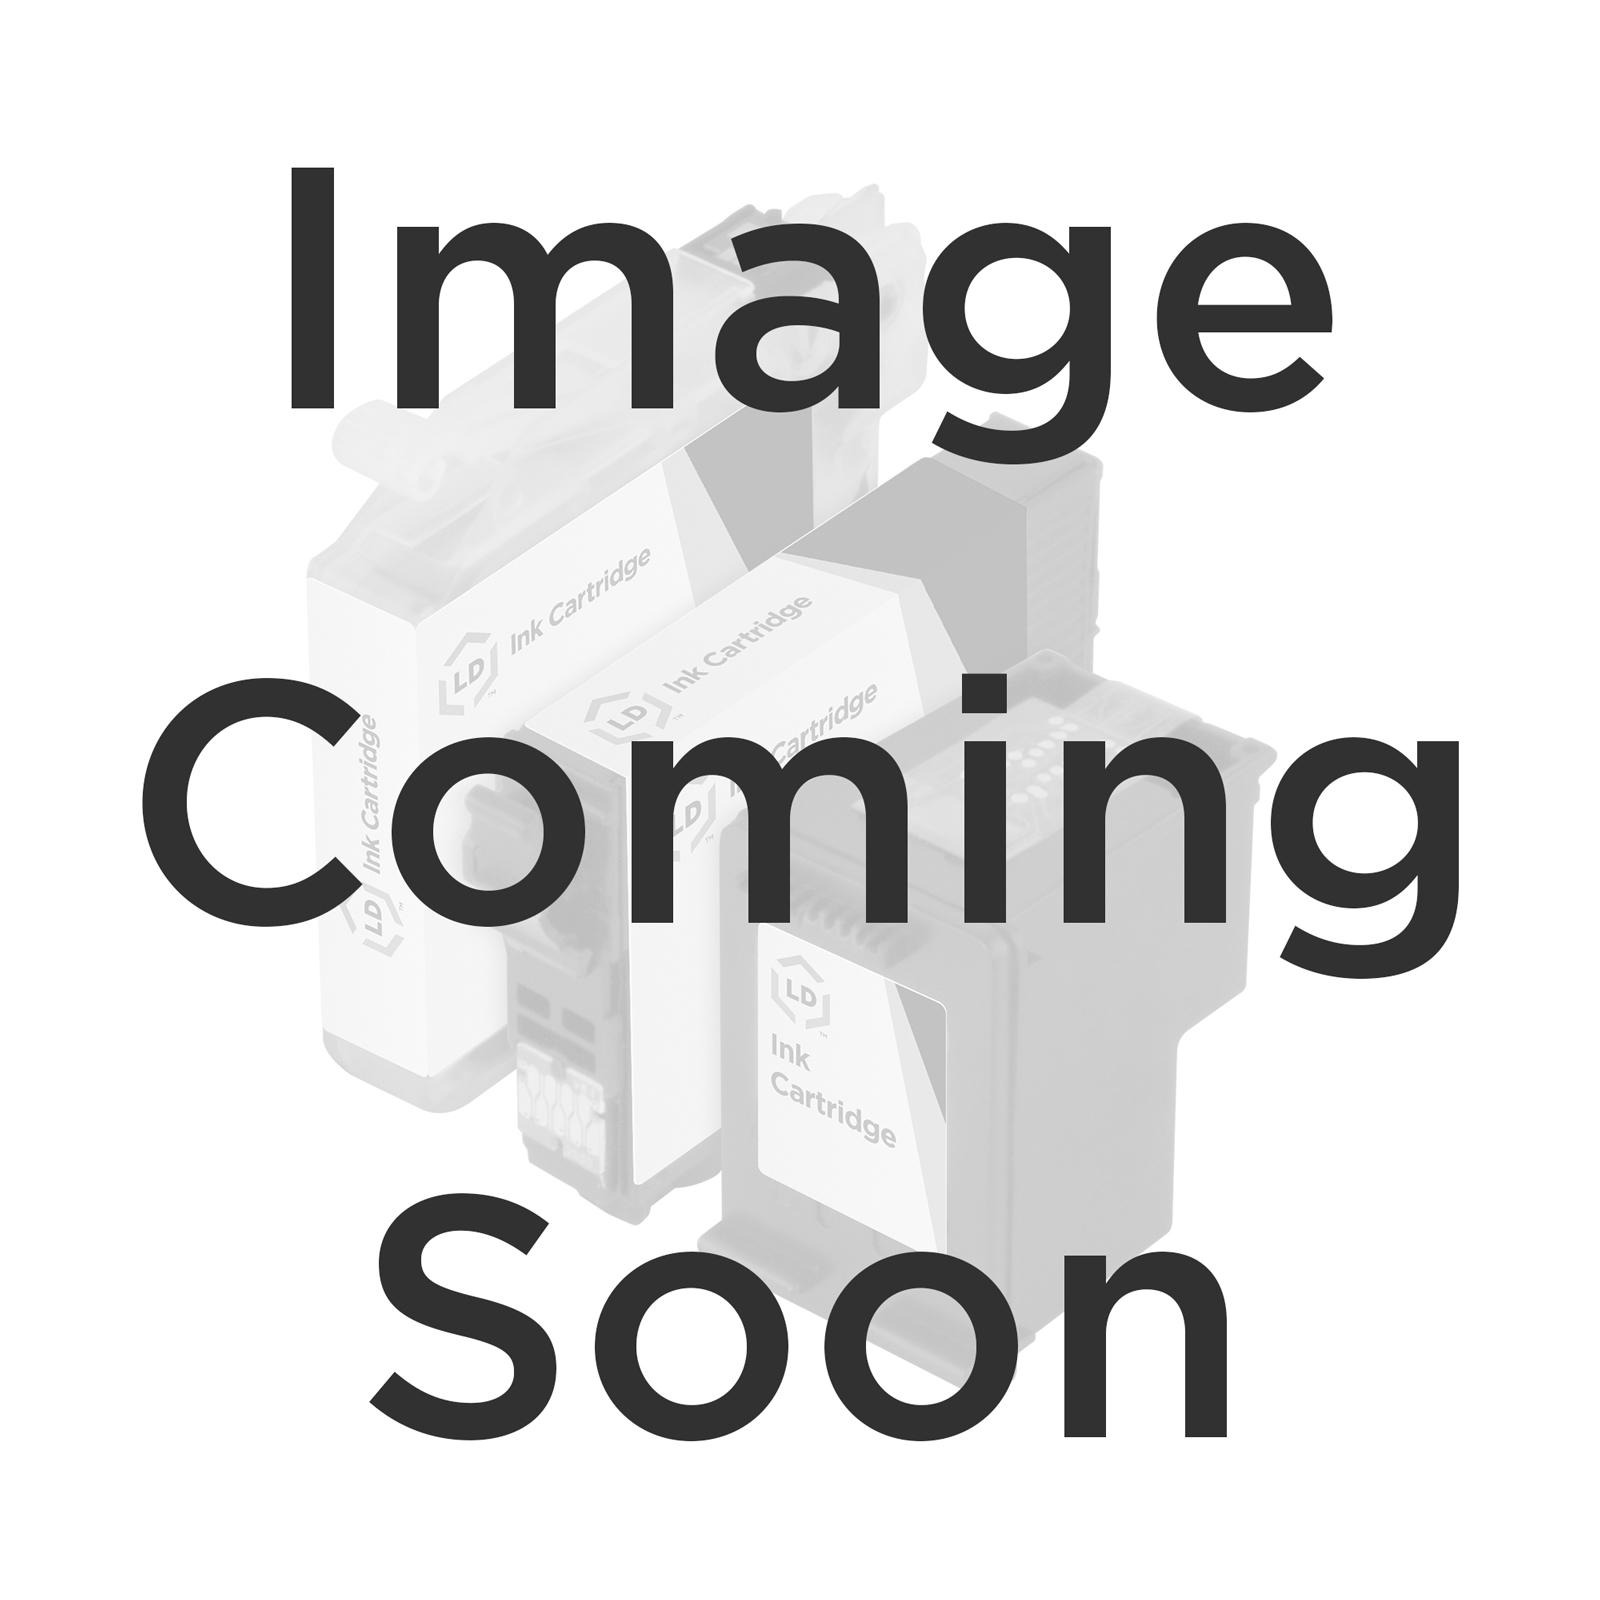 "Roaring Spring Second Grade Composition Book - 50 Sheet - Ruled - 7.75"" x 9.75"" - Marble Blue Cover"